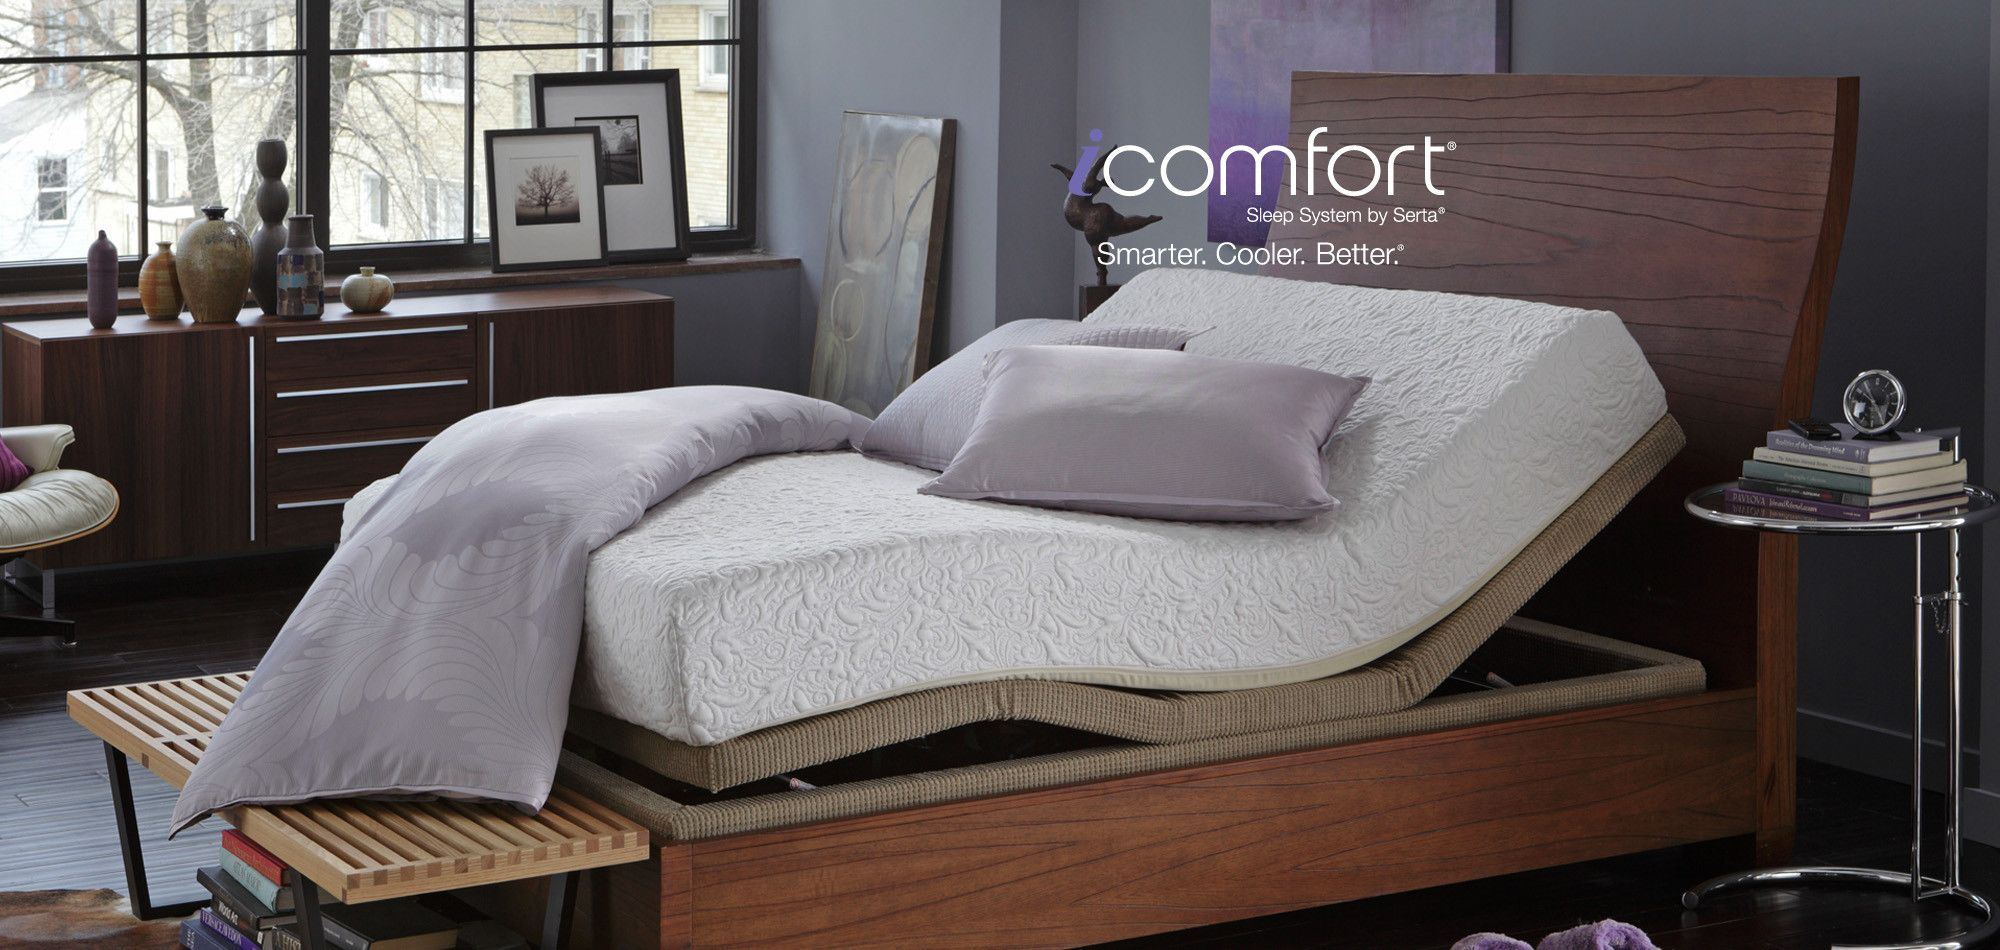 Forniture Per Tappezzieri Roma icomfort (with images) | mattress furniture, mattress sets